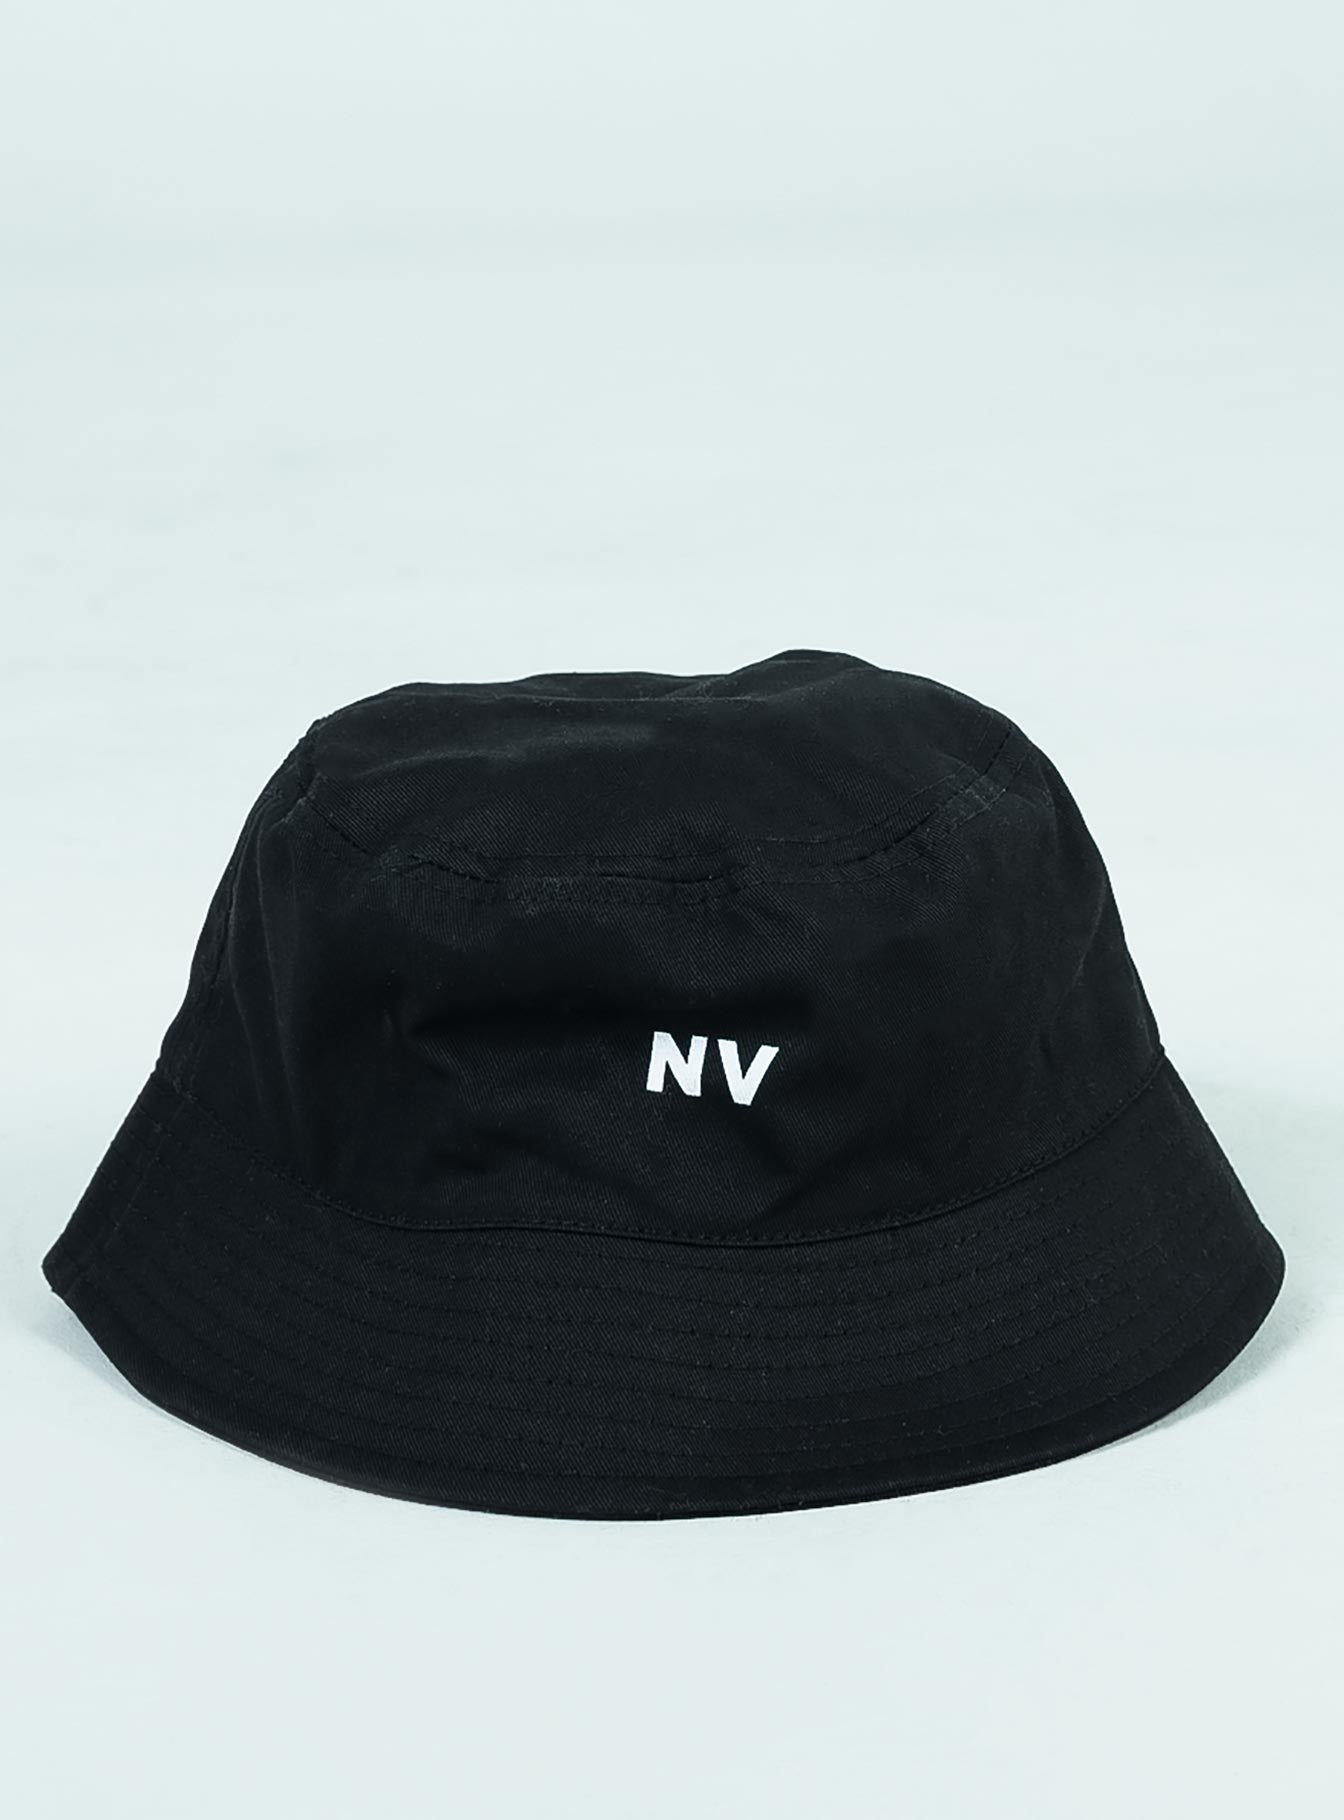 Nakedvice Bucket Hat